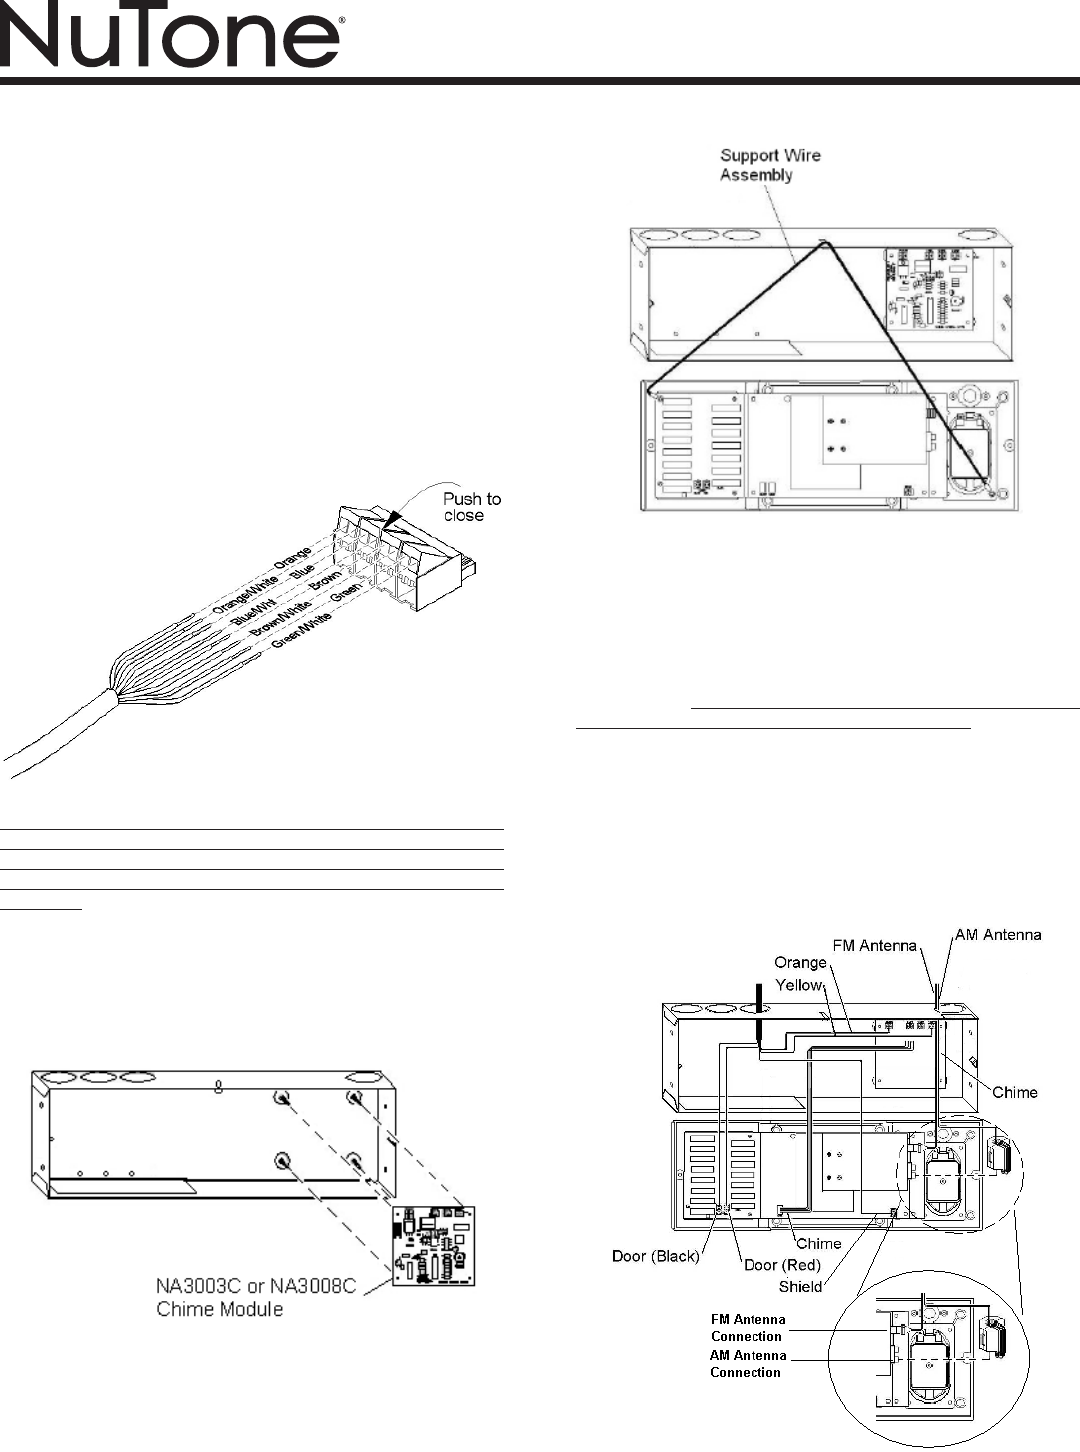 092c818d 6be6 459b 934f a0267f9d713a bg3 page 3 of nutone intercom system nm200wh user guide wiring diagram for nutone intercom at n-0.co